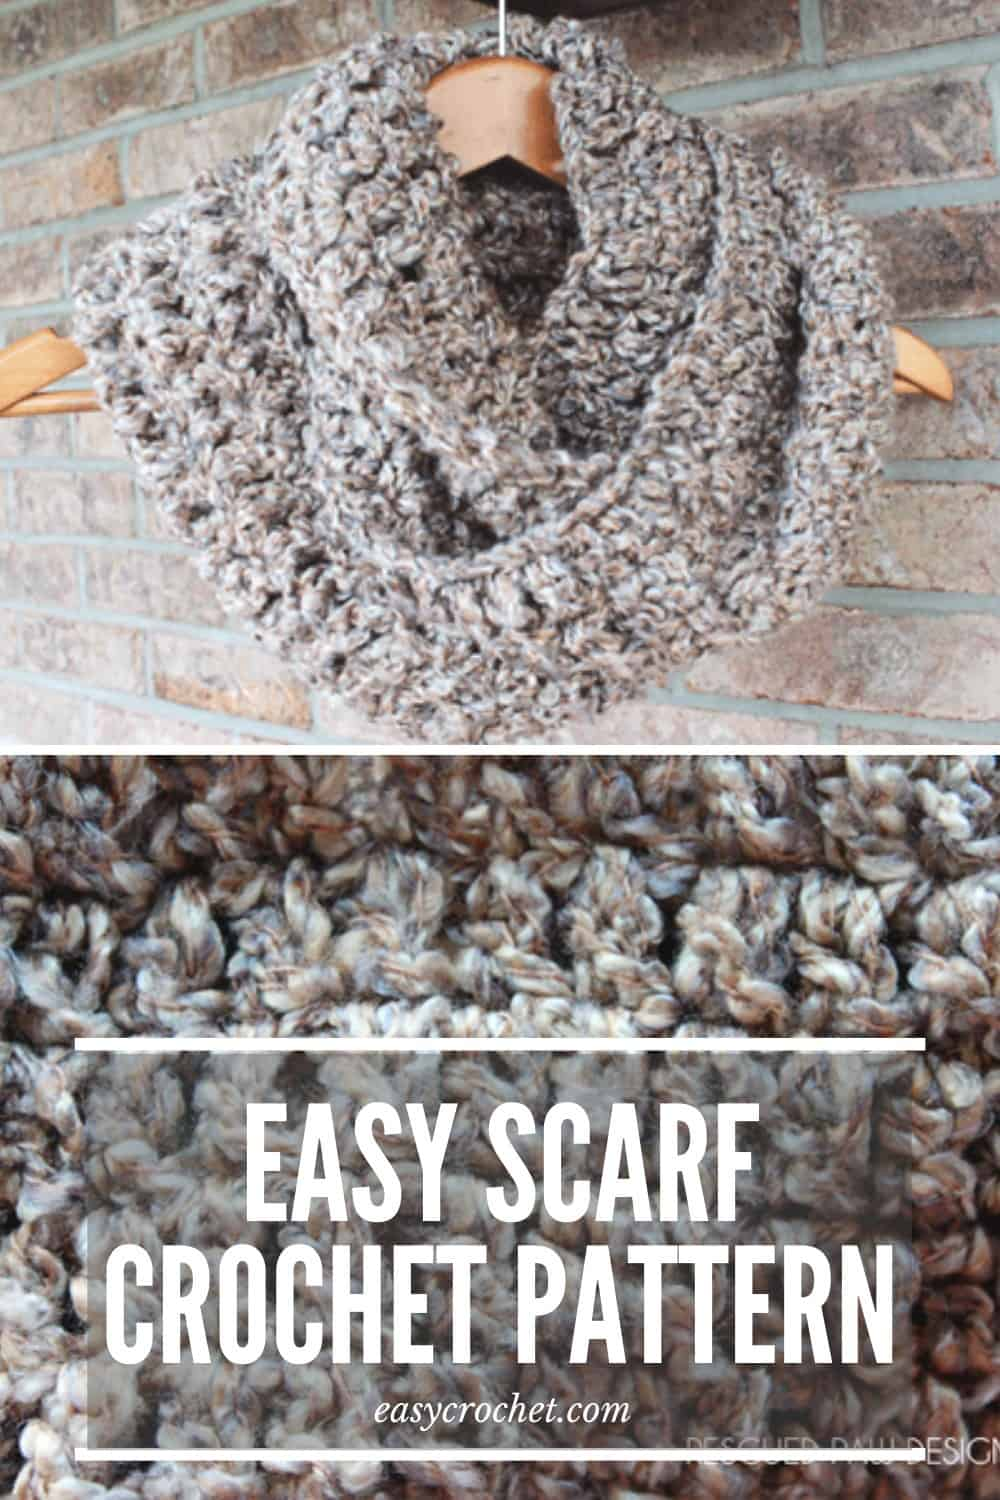 Crochet this easy and beginner-friendly crochet scarf that uses only Double crochets! via @easycrochetcom